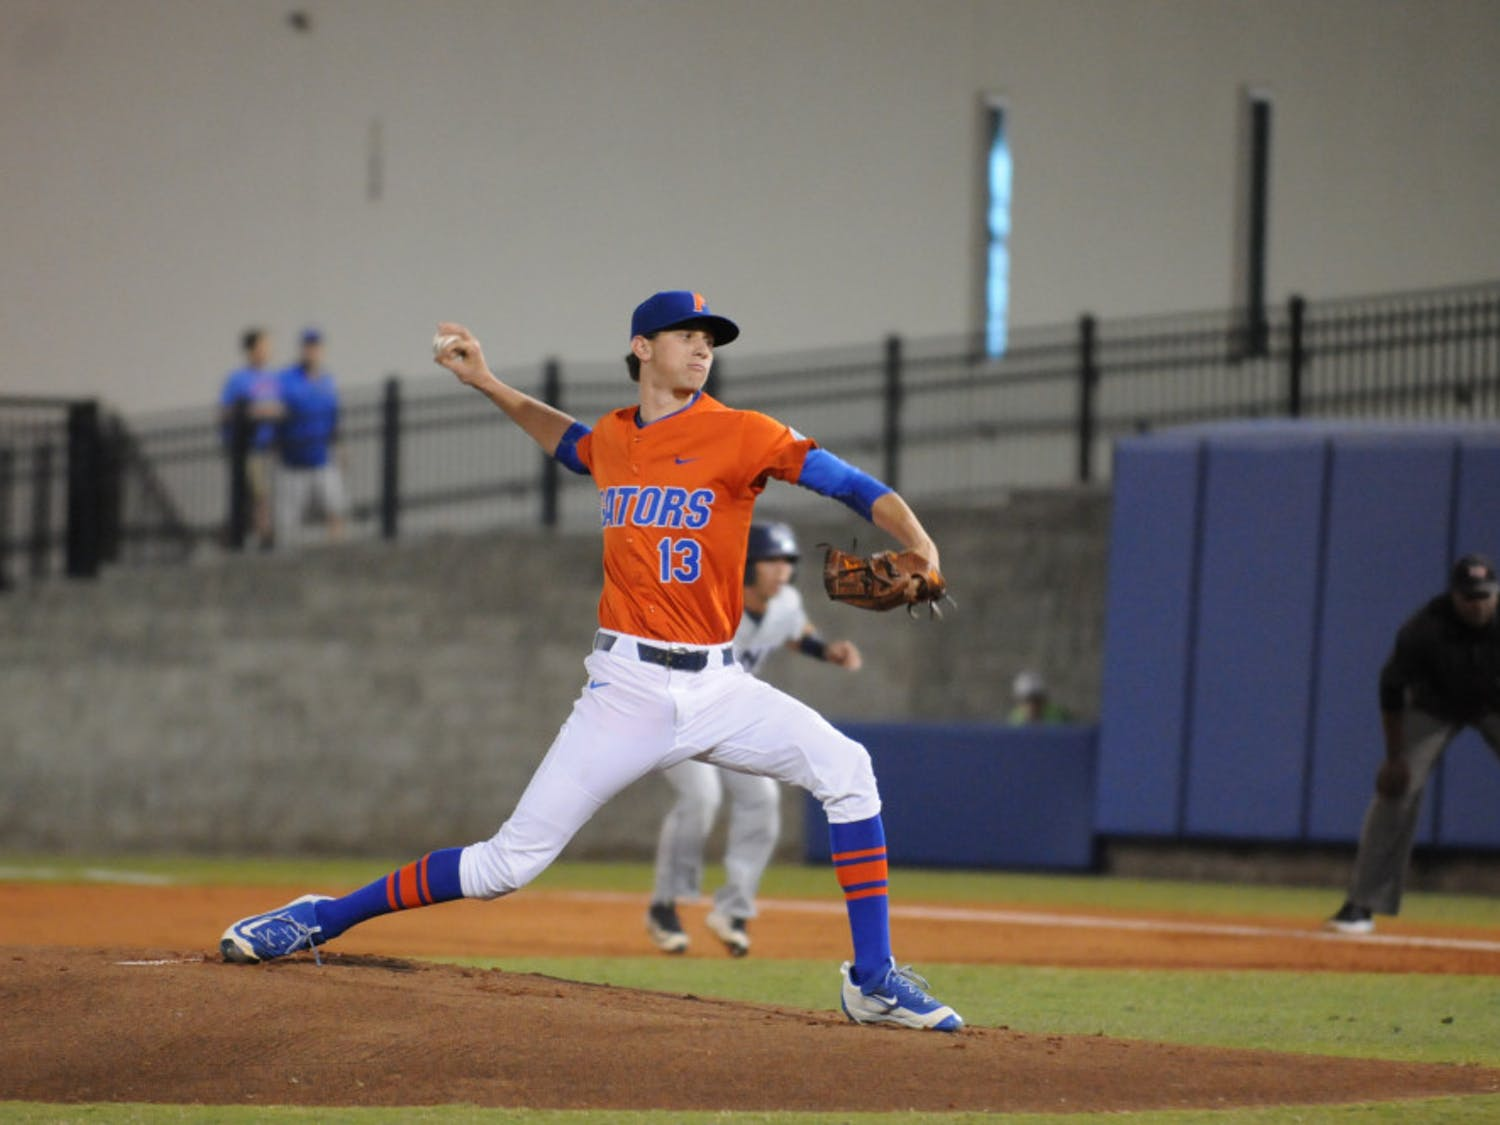 Jackson Kowar pitches during Florida's 5-4 win over North Florida on March 9, 2016, at McKethan Stadium.